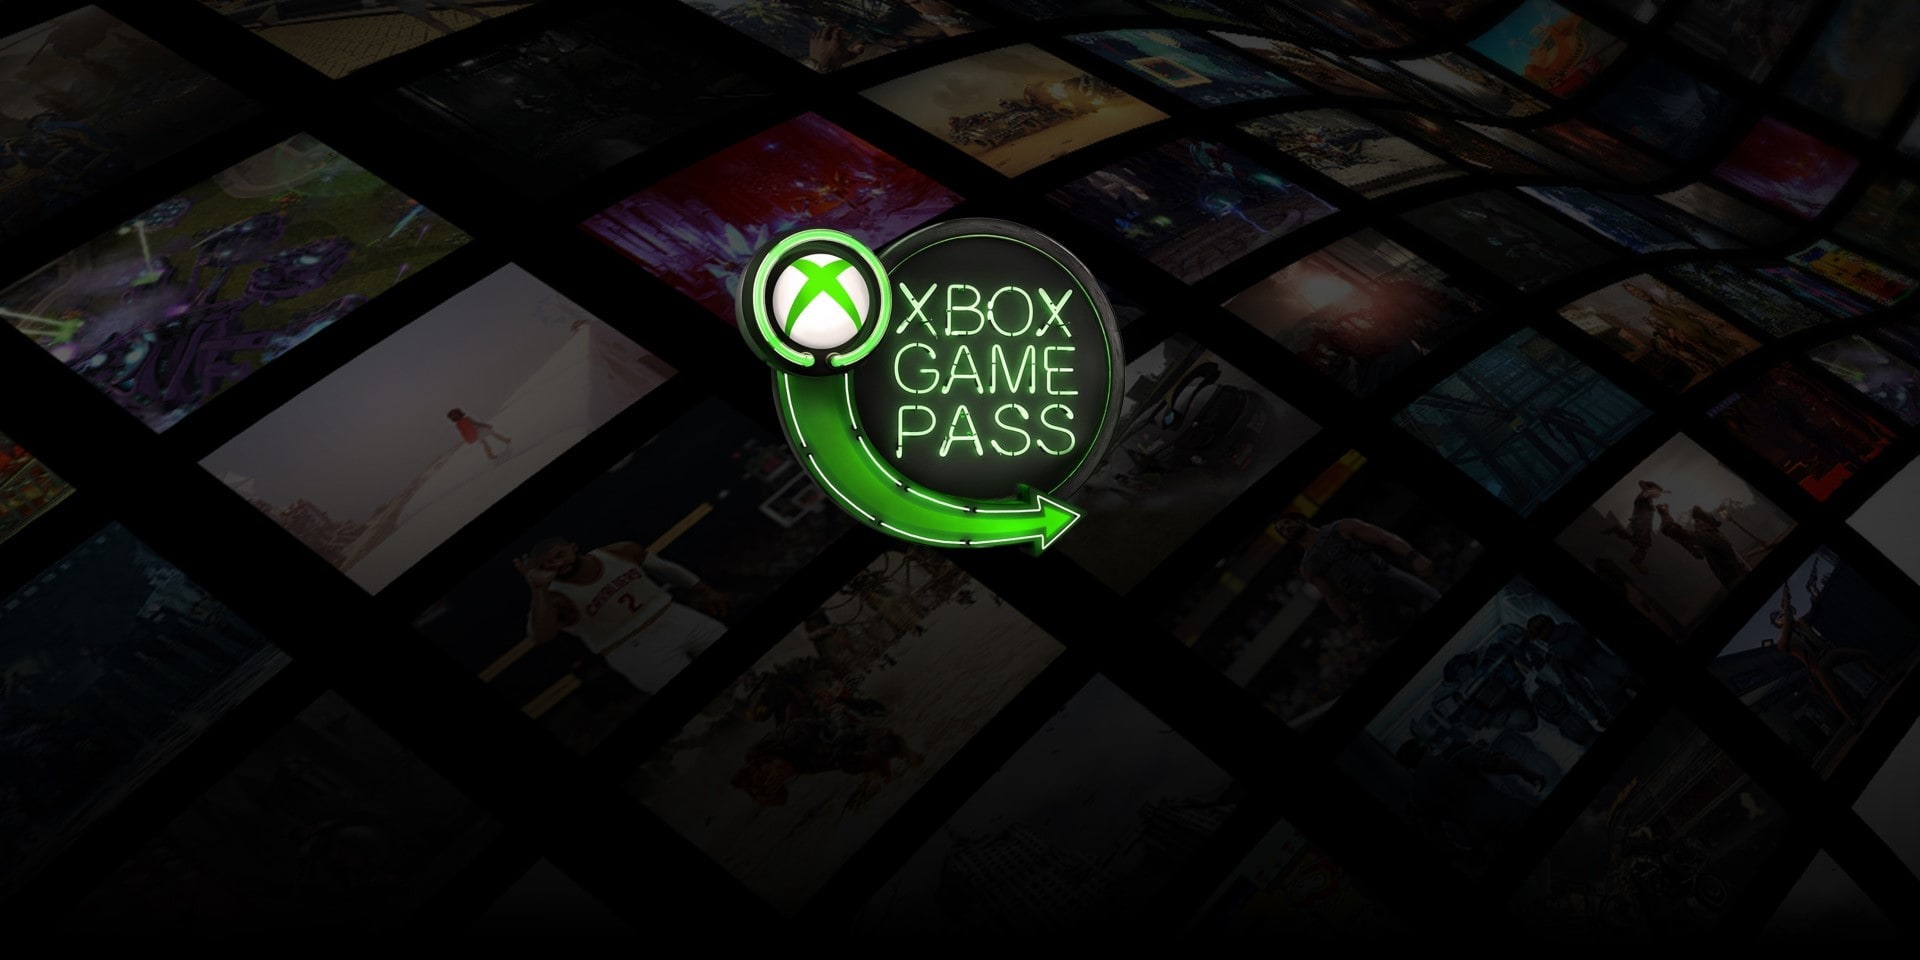 Give Xbox Game Pass a shot while the price is right: 3 months for $1 (Reg. $30)